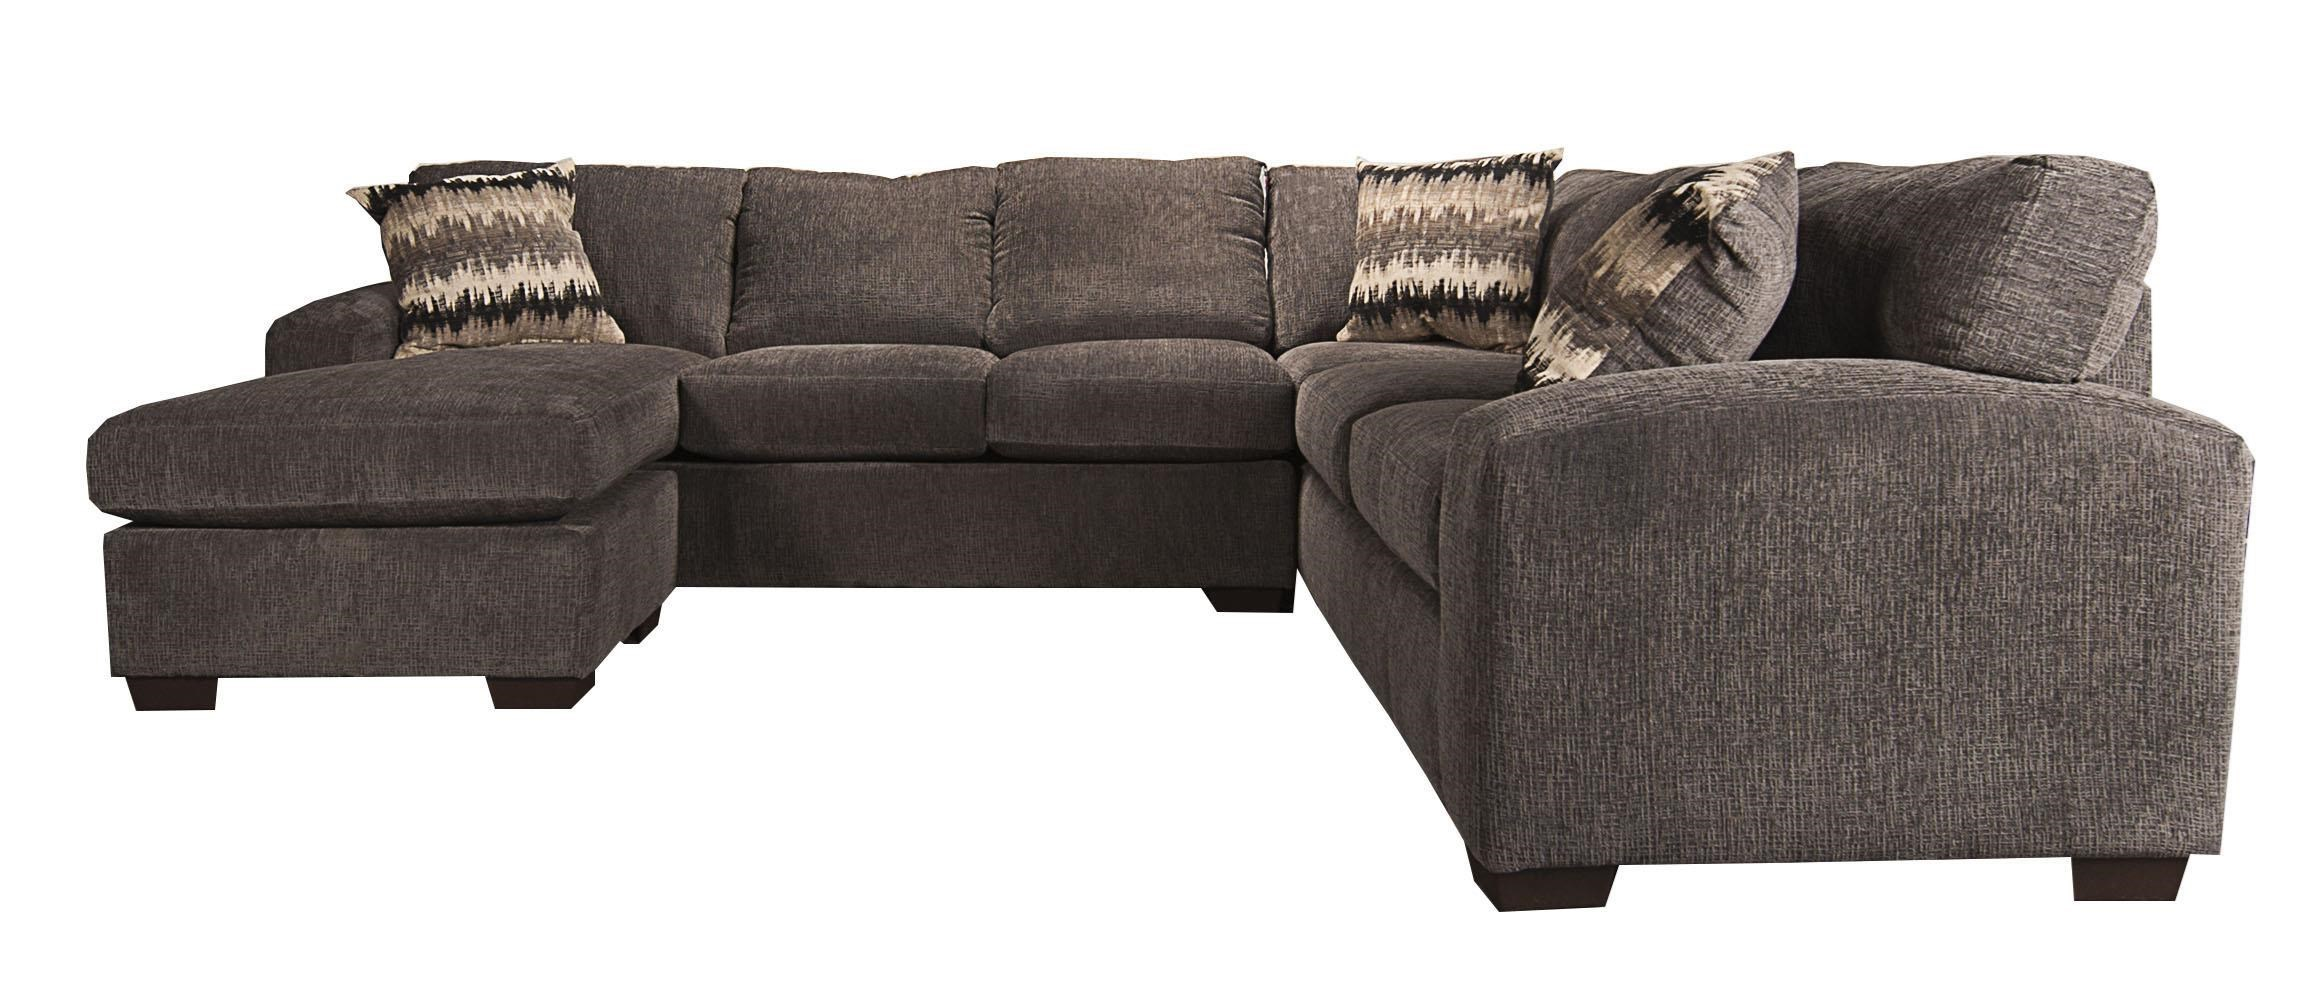 Morris Home Furnishings CyndelCyndel 2 Piece Sectional ...